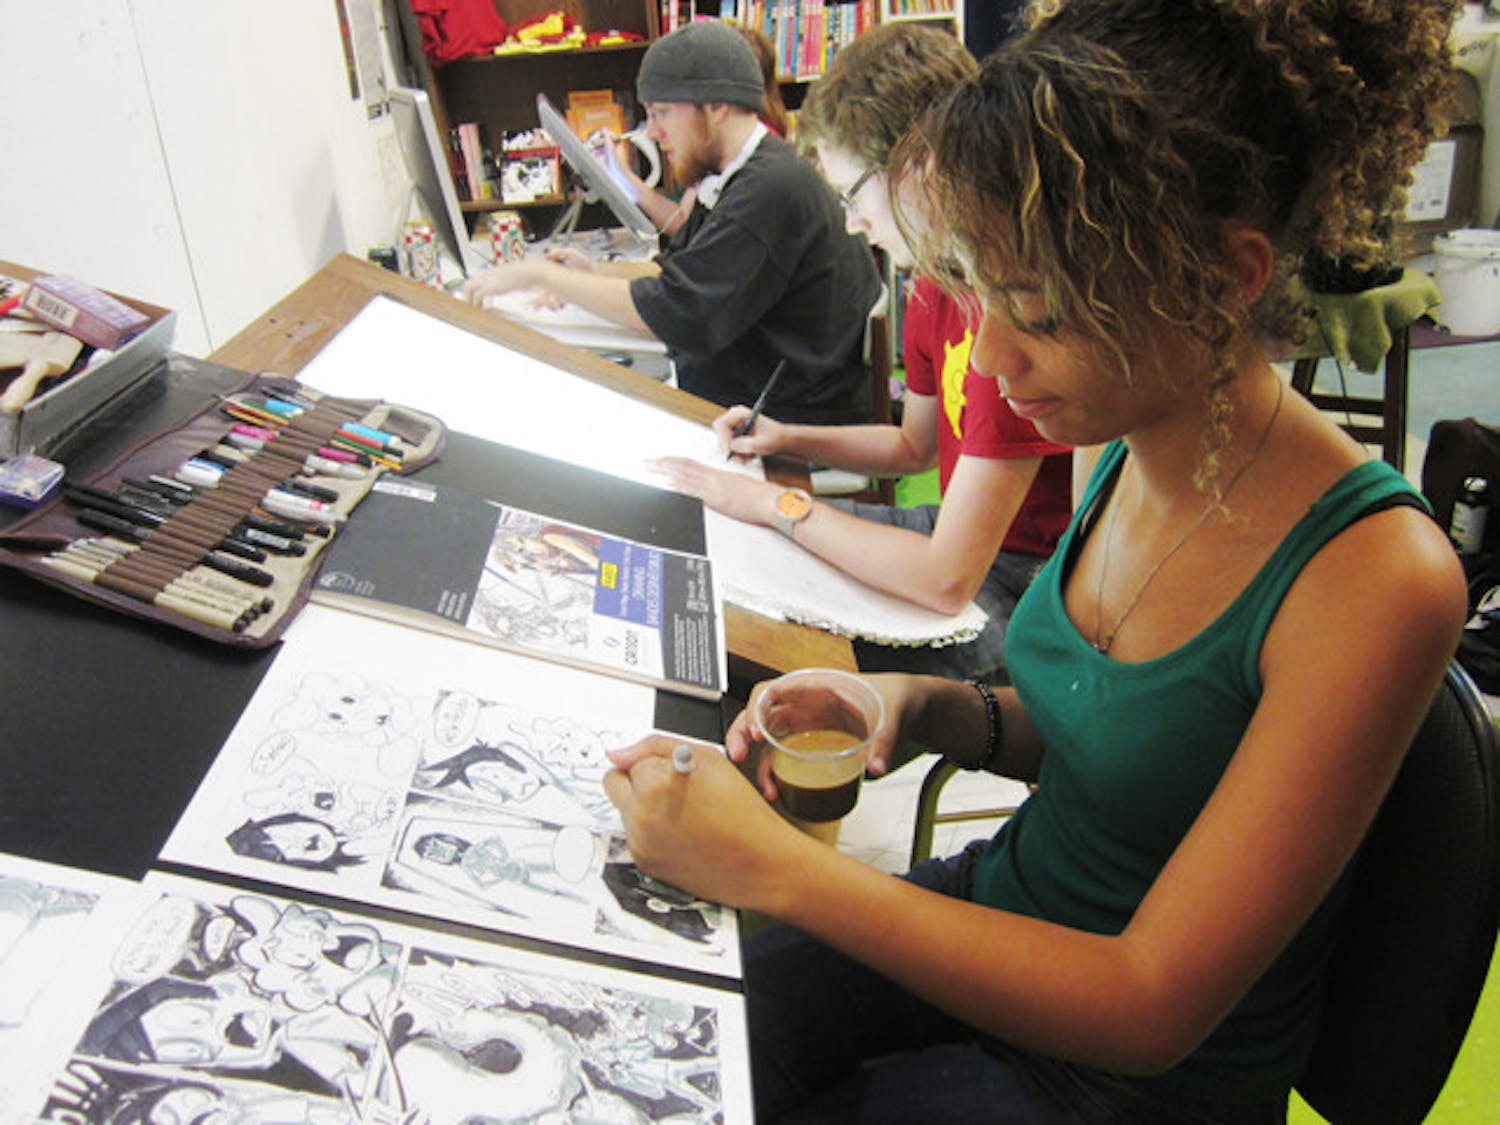 Kyana Mitchell, 18, works on her comic about children who discover a mutated squid monster in their basement. Mitchell participated in 24-Hour Comics Day Saturday and Sunday at the Sequential Artists Workshop downtown.